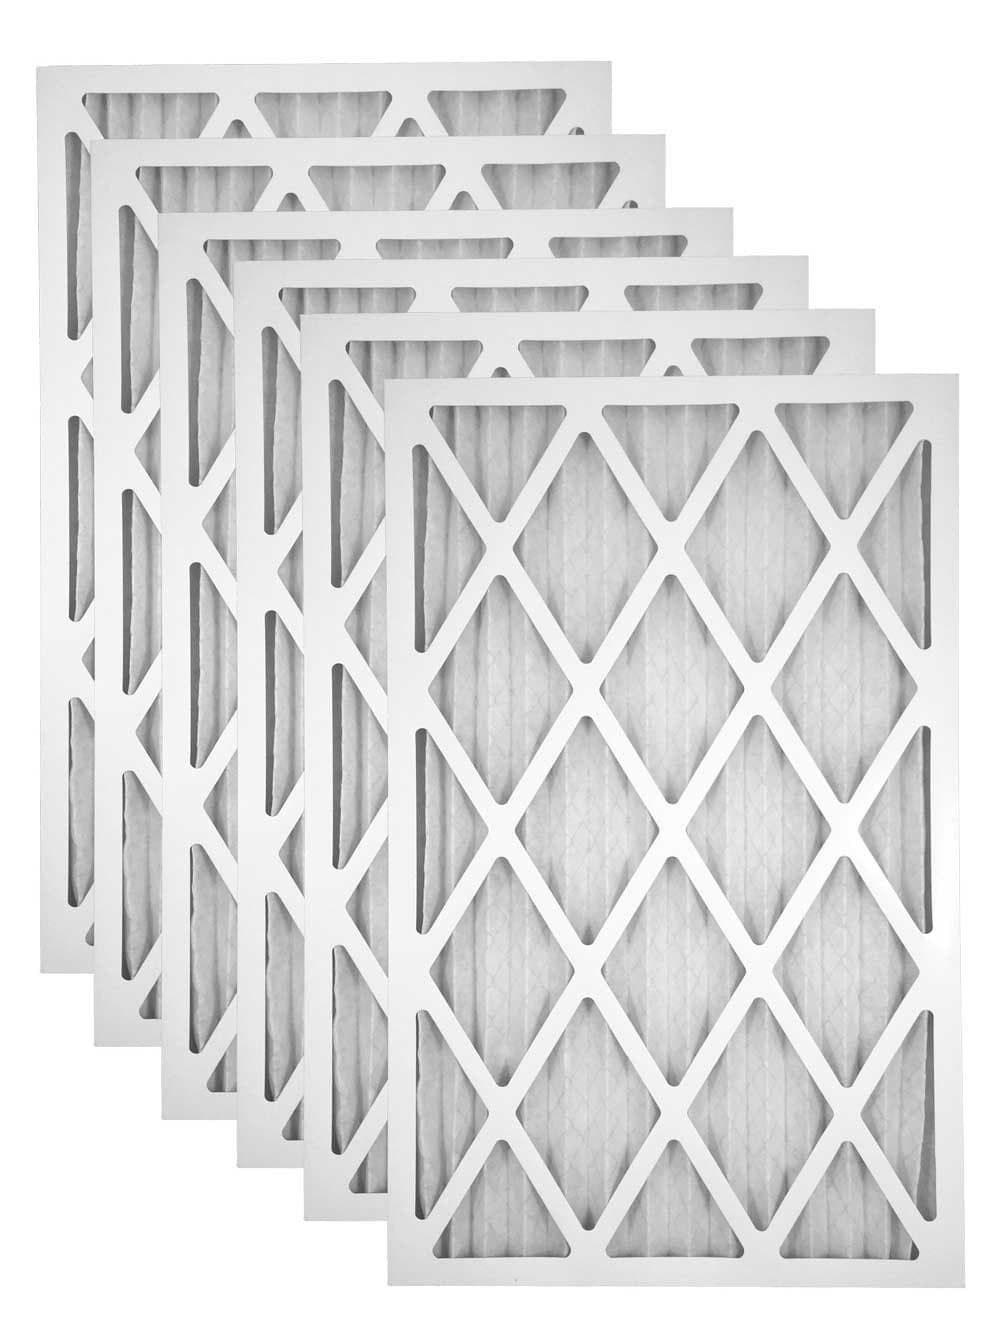 12x25x1 Merv 8 AC Furnace Filter - Case of 6